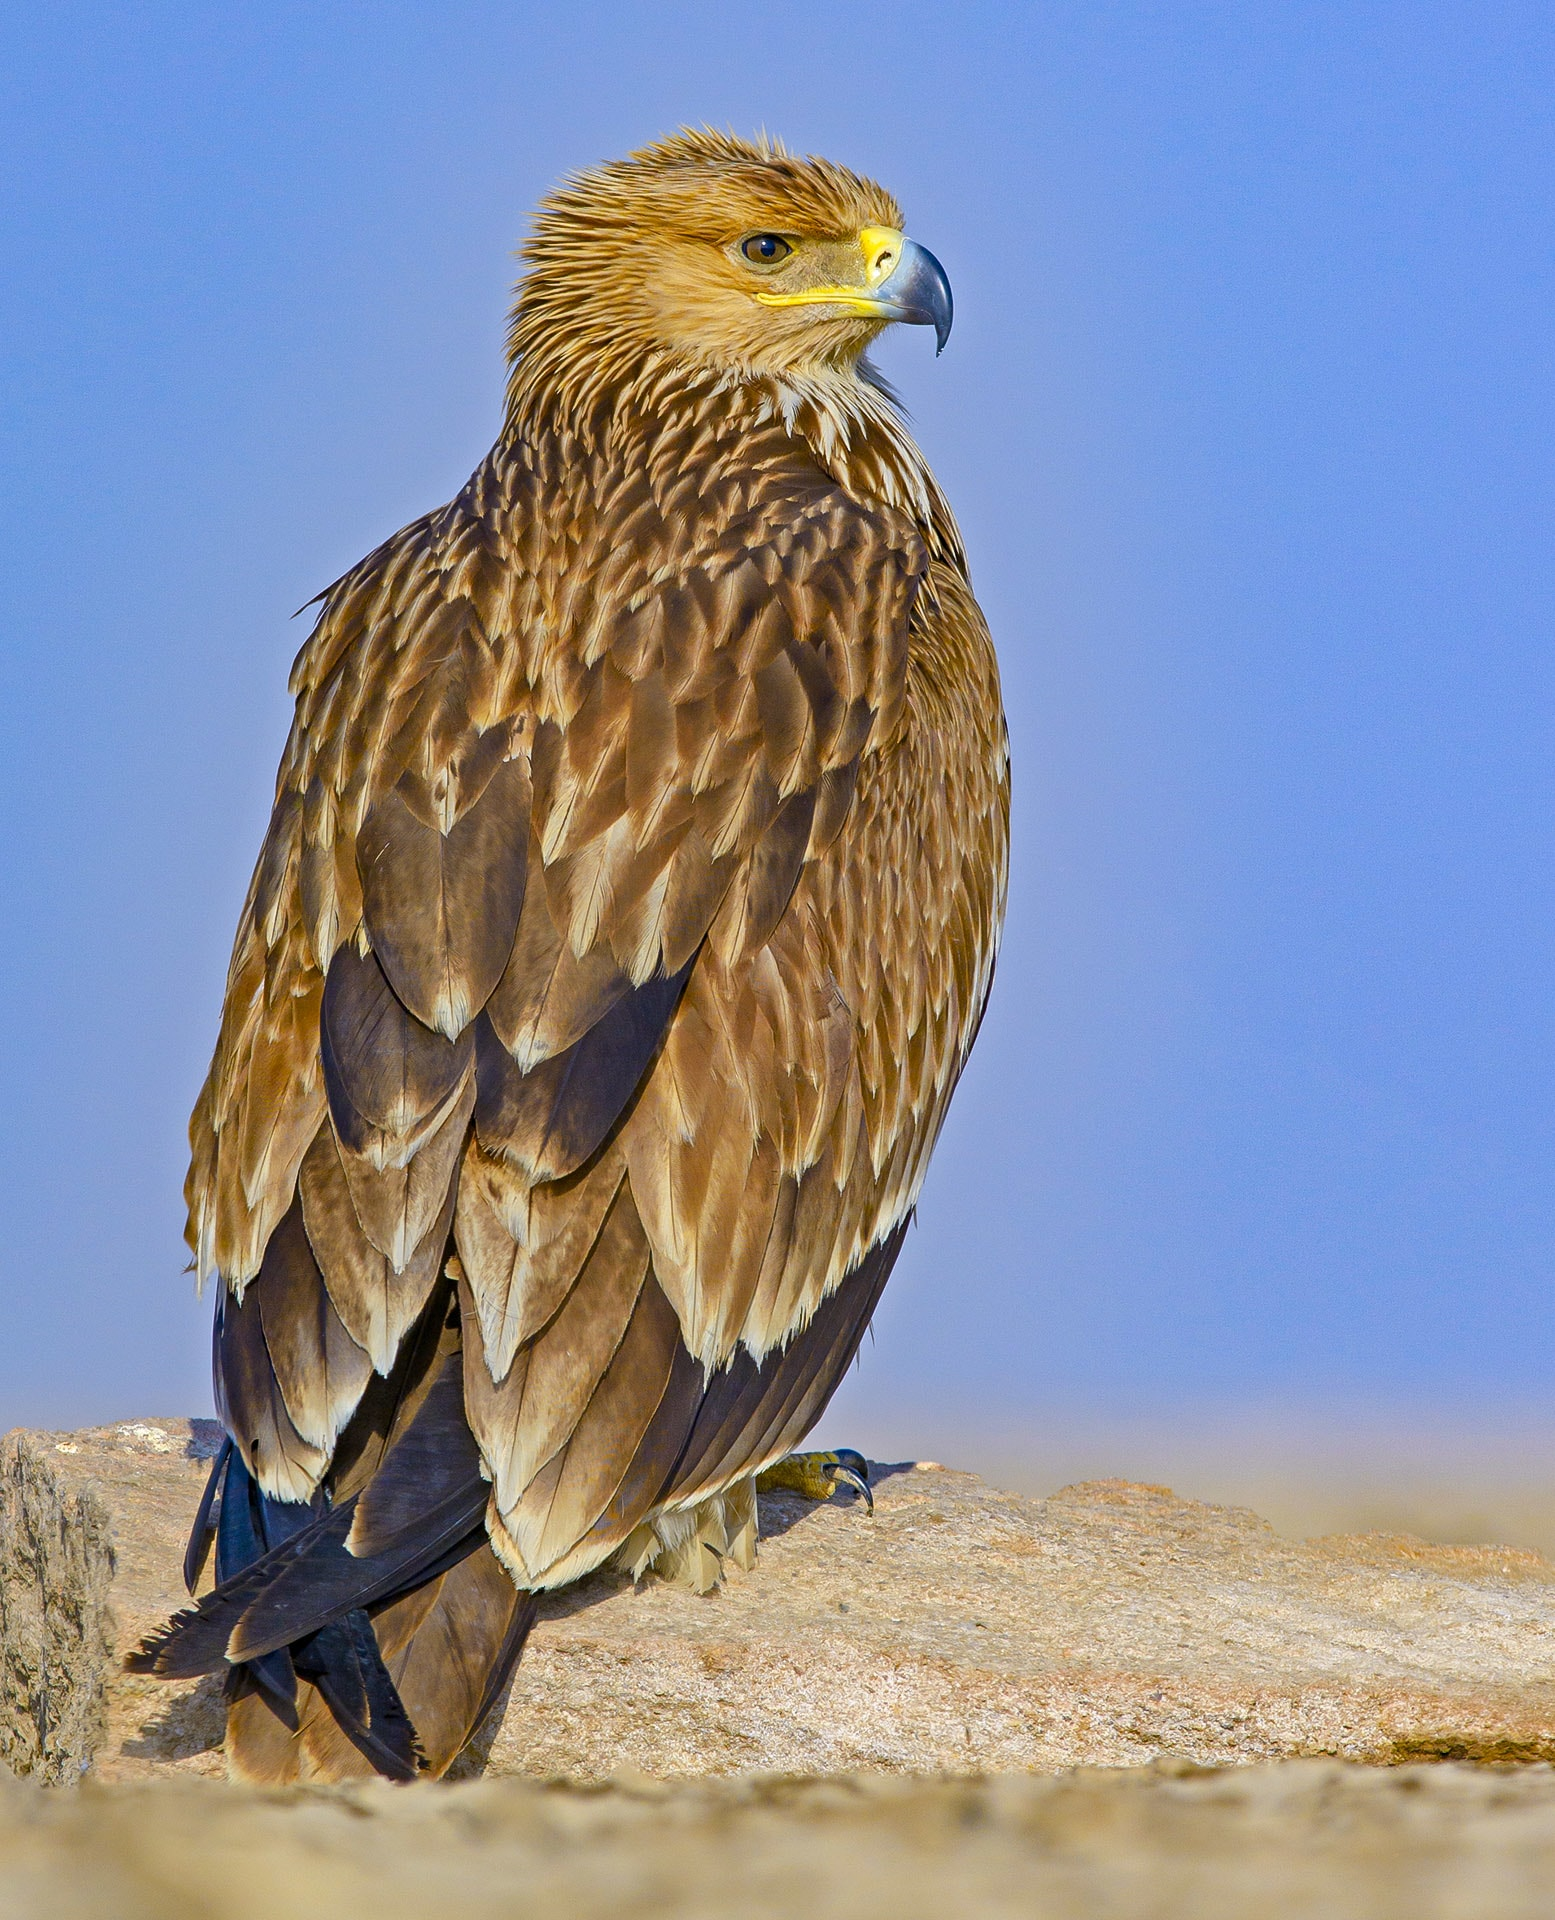 """Eagles have relatively large wingspans that they use to soar above the ground and fly long distances. Species such as the eastern Imperial eagle (Aquila heliacal) are migratory in nature and breed in a variety of locations, including Austria, China, Greece, Russia, and Georgia. They spend the winter months in the Middle East, Africa, and parts of the Indian subcontinent, """"mainly in north and northwest India, not in peninsular India,"""" says Dr Rahmani. Photo: Dhritiman Mukherjee"""